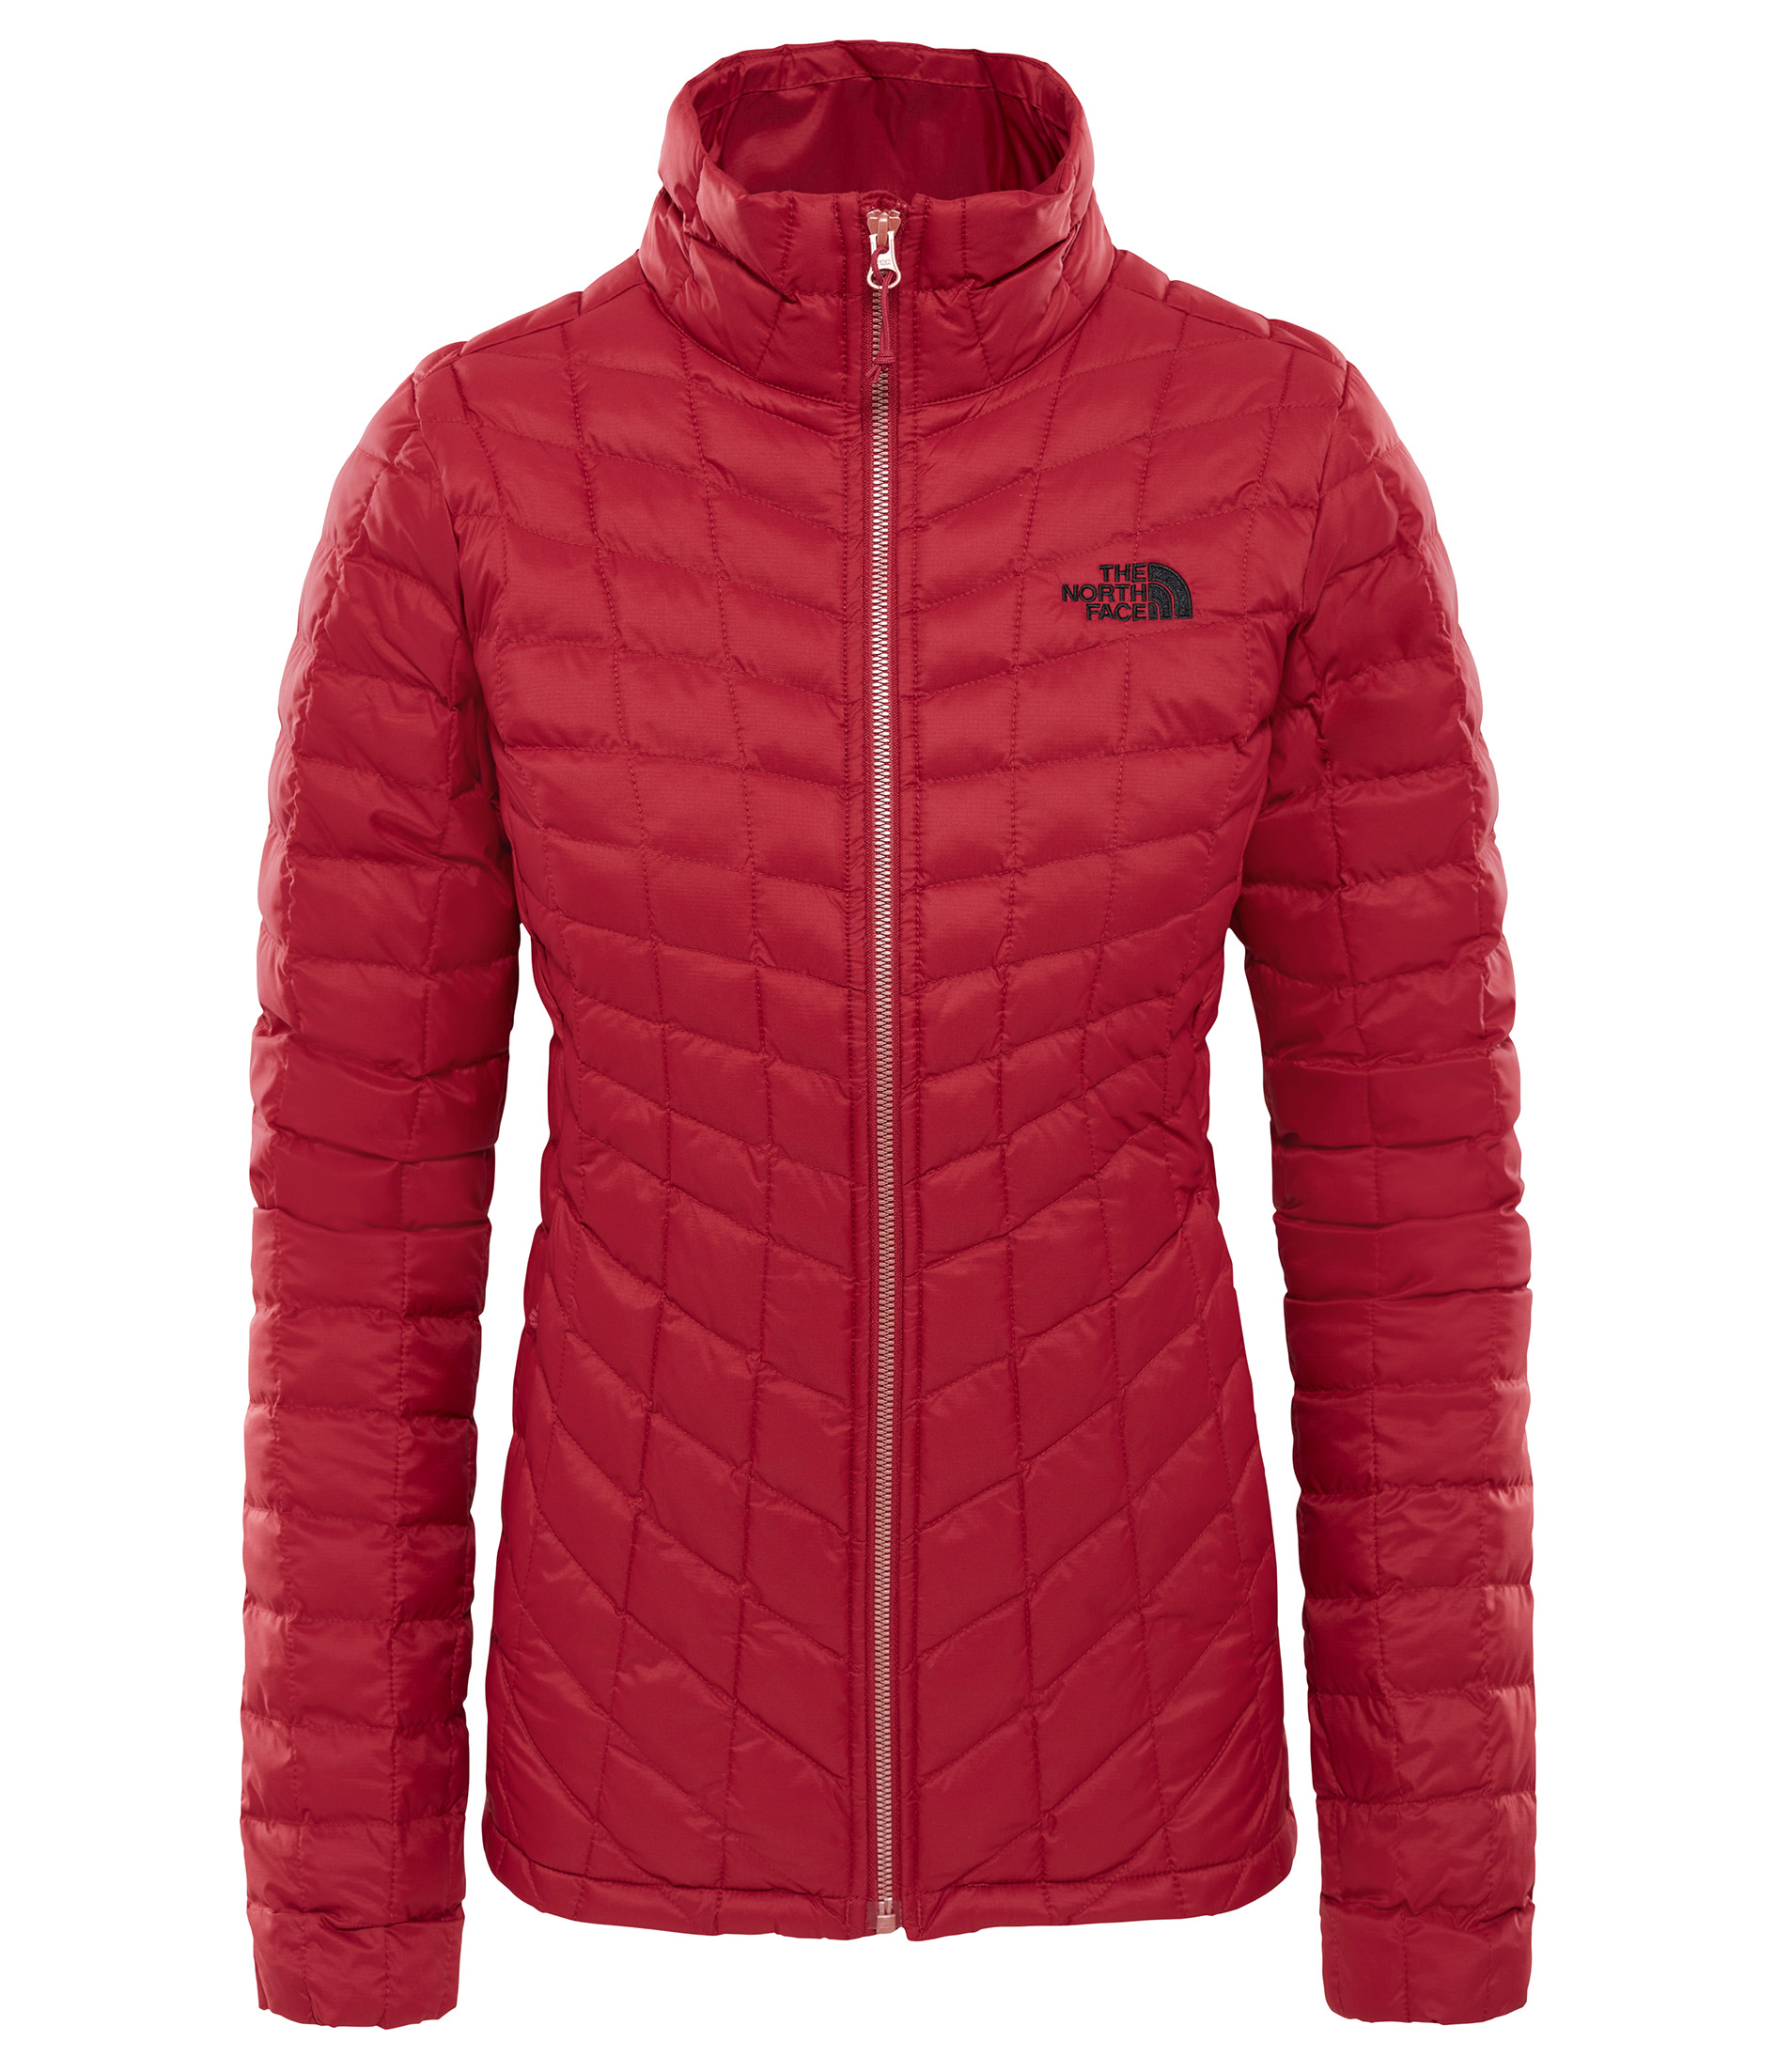 The North Face Women's ThermoBall™ Eco Jacket | Jackets